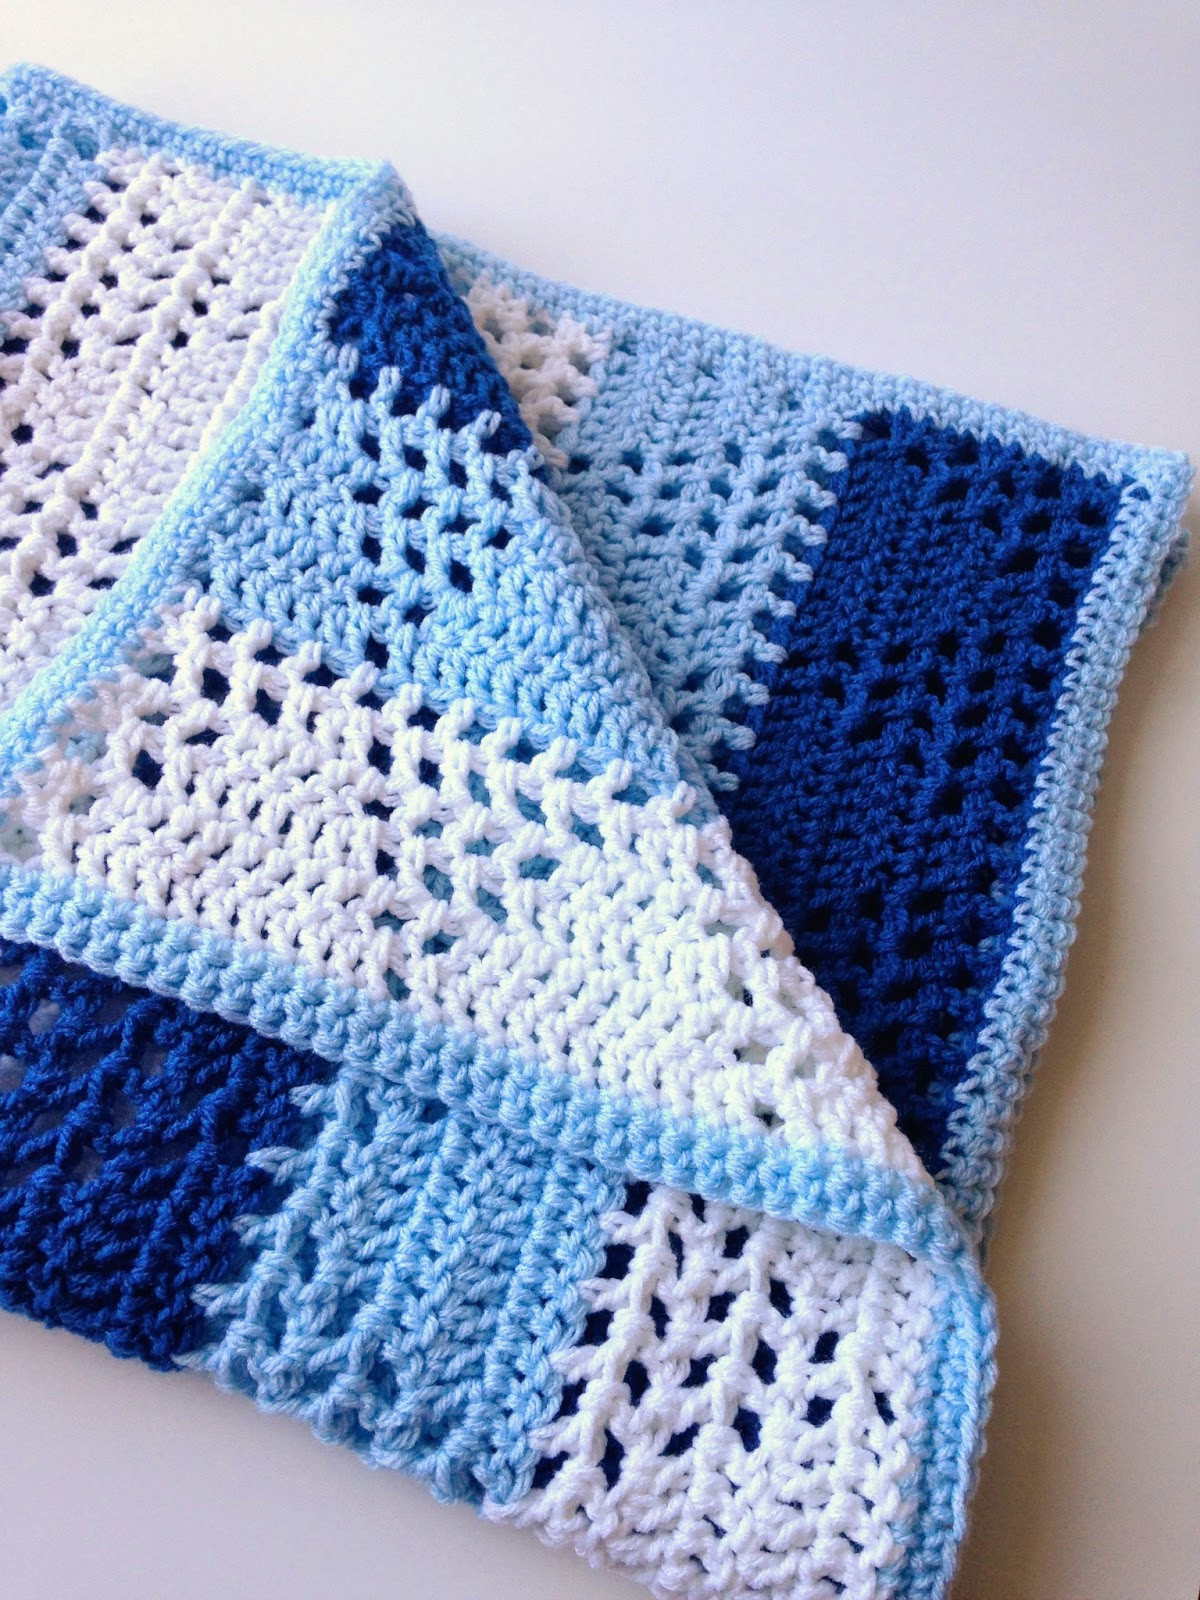 Baby Boy Crochet Blanket Patterns Awesome 5 Little Monsters Triangles & Stripes Baby Blanket Of Baby Boy Crochet Blanket Patterns Lovely My Crochet Part 395